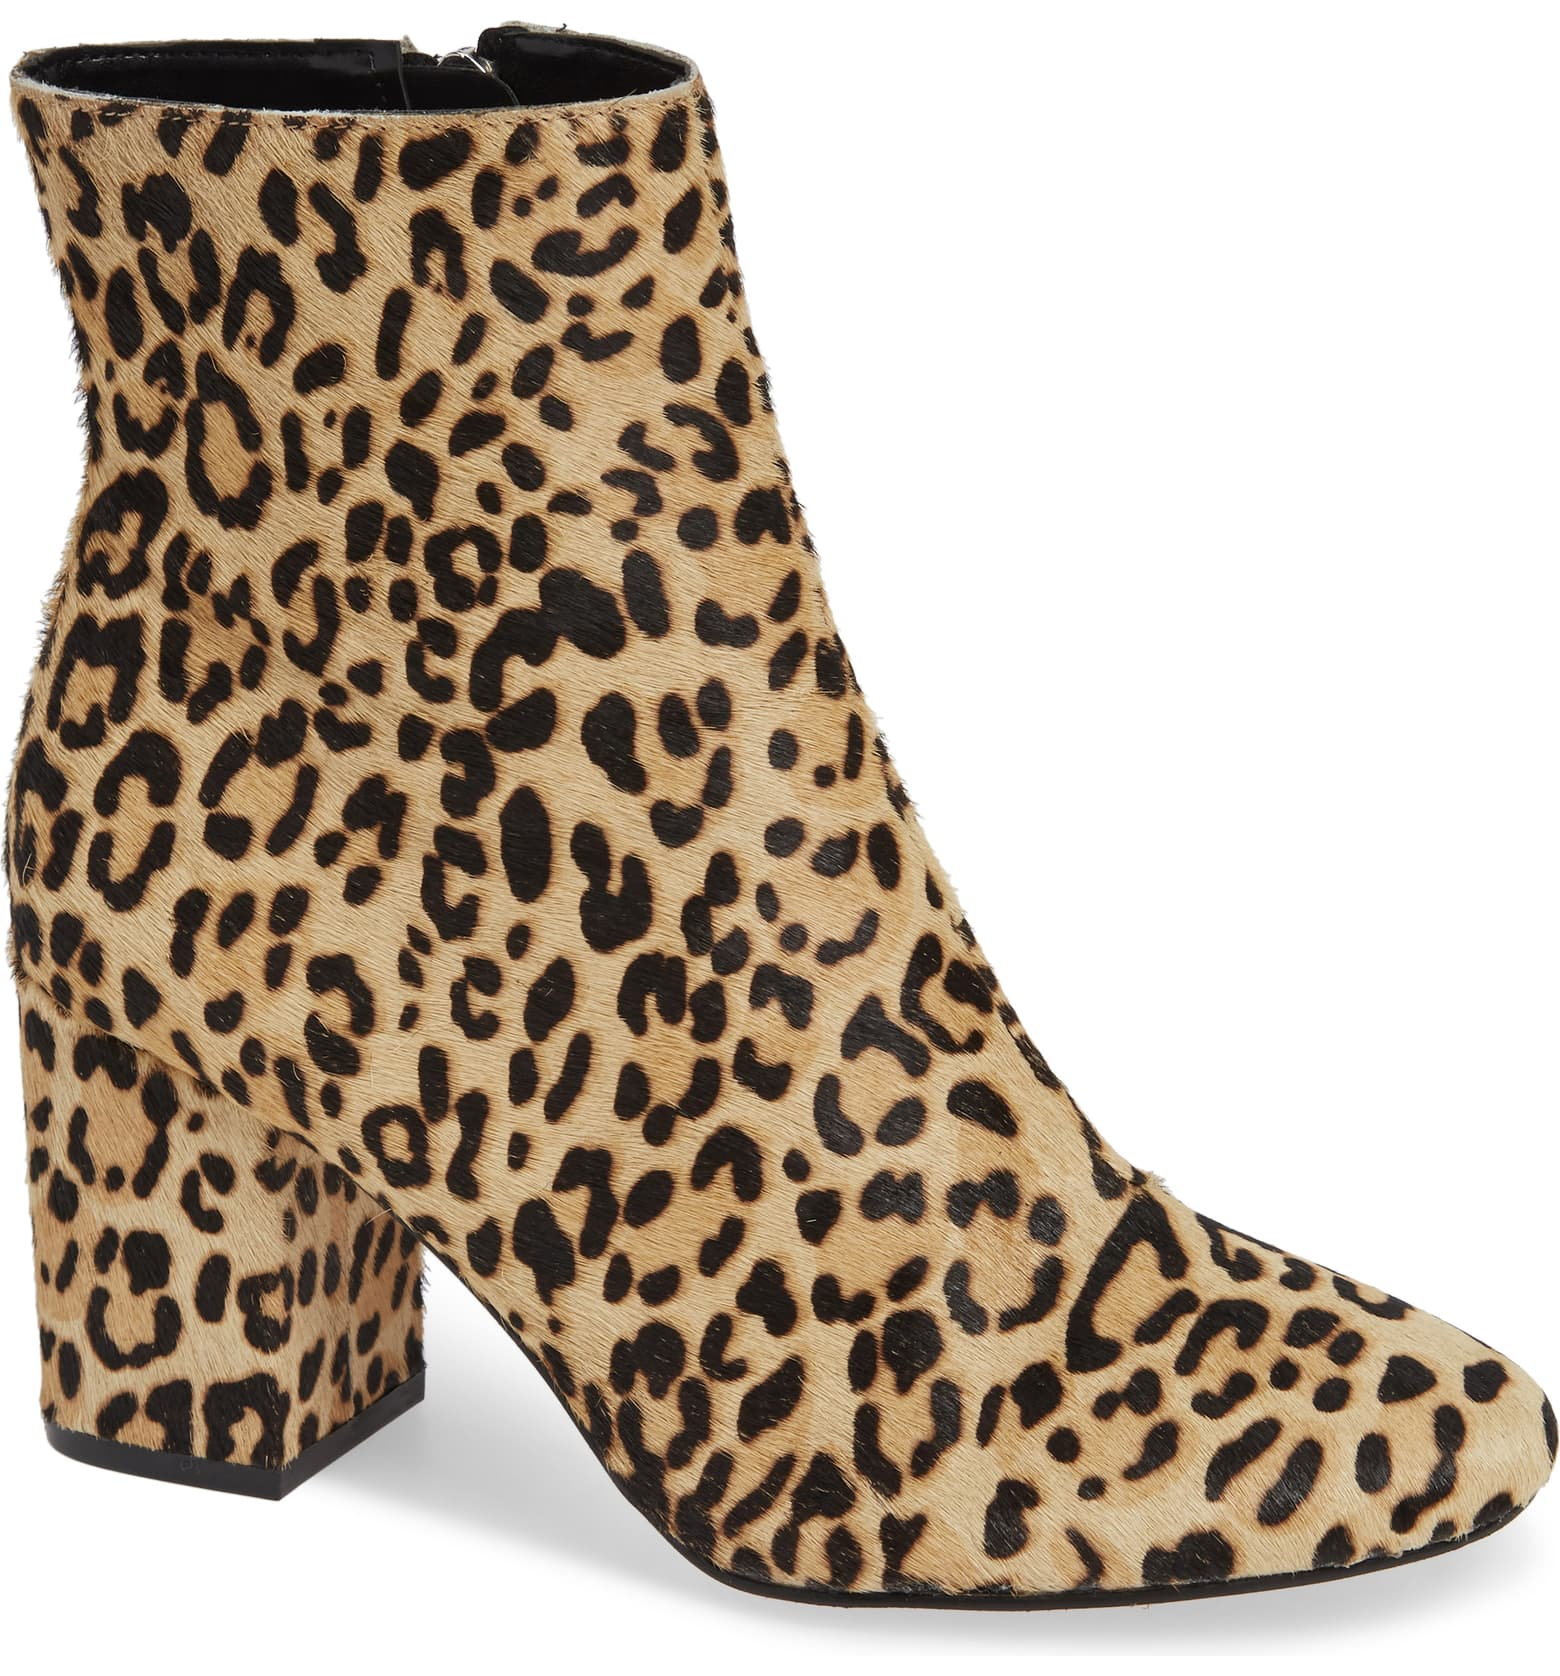 Halogen Leopard print booties are popular right now for fall 2019 autumn boot trends!